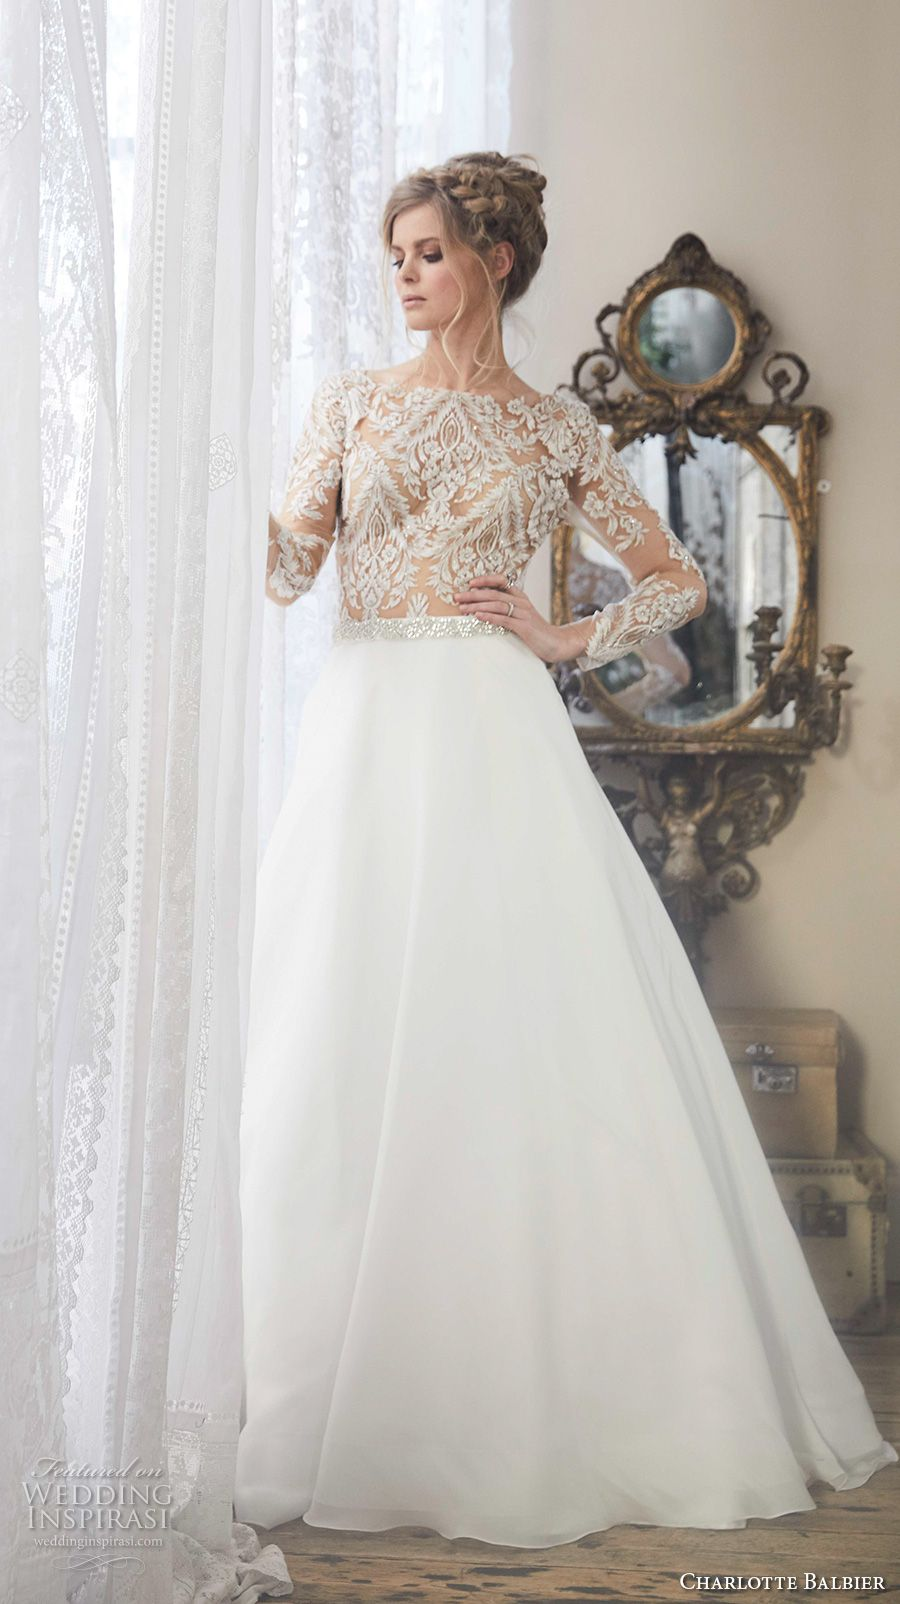 Vivienne westwood wedding dress 2018 with lace